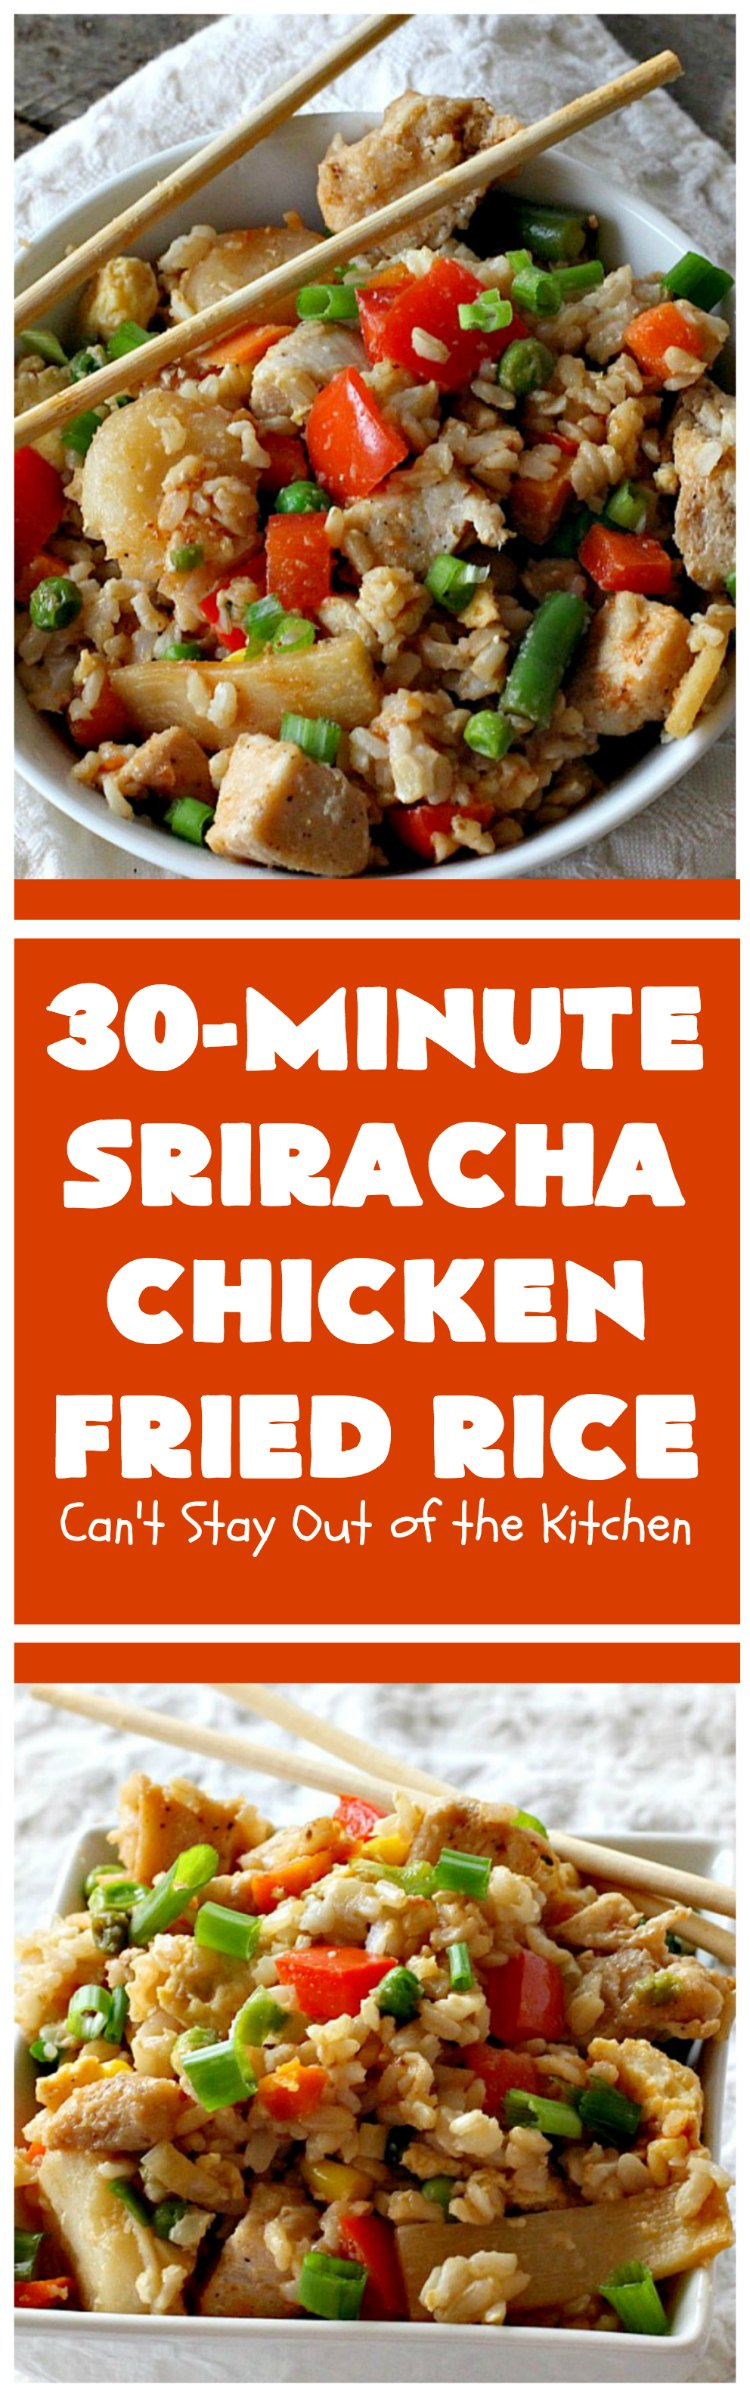 Sriracha Chicken Fried Rice | Can't Stay Out of the Kitchen | fantastic #chicken #friedrice entree. This one is spiced up with #Sriracha sauce! This 30-minute meal is a winner! #glutenfree #rice